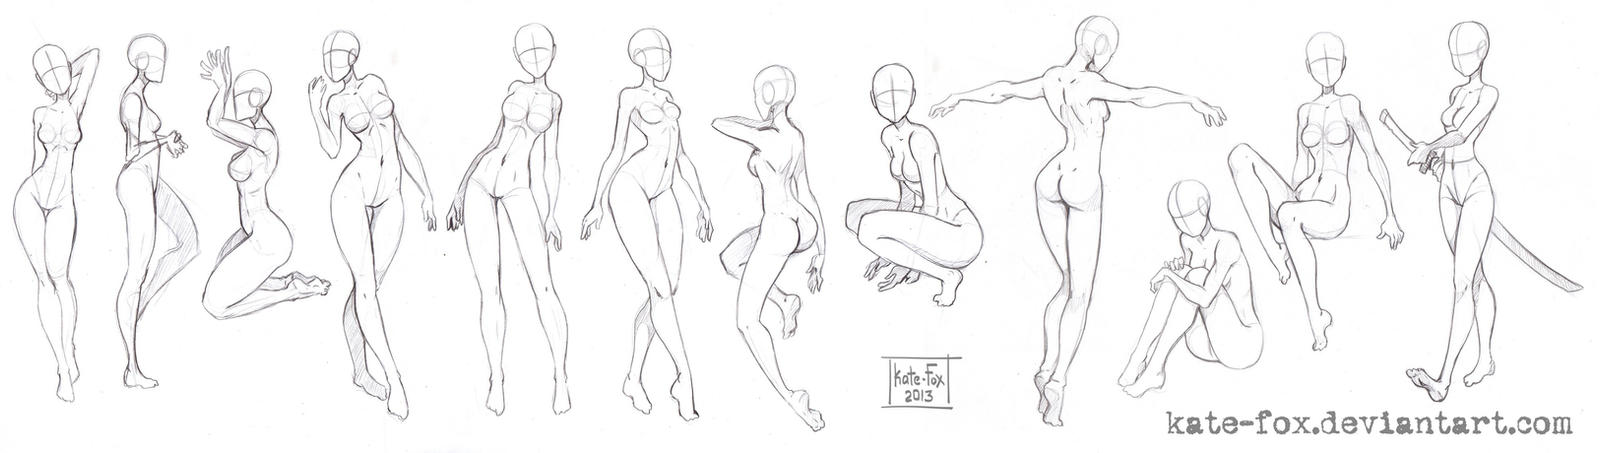 Pose study6 by Kate-FoX